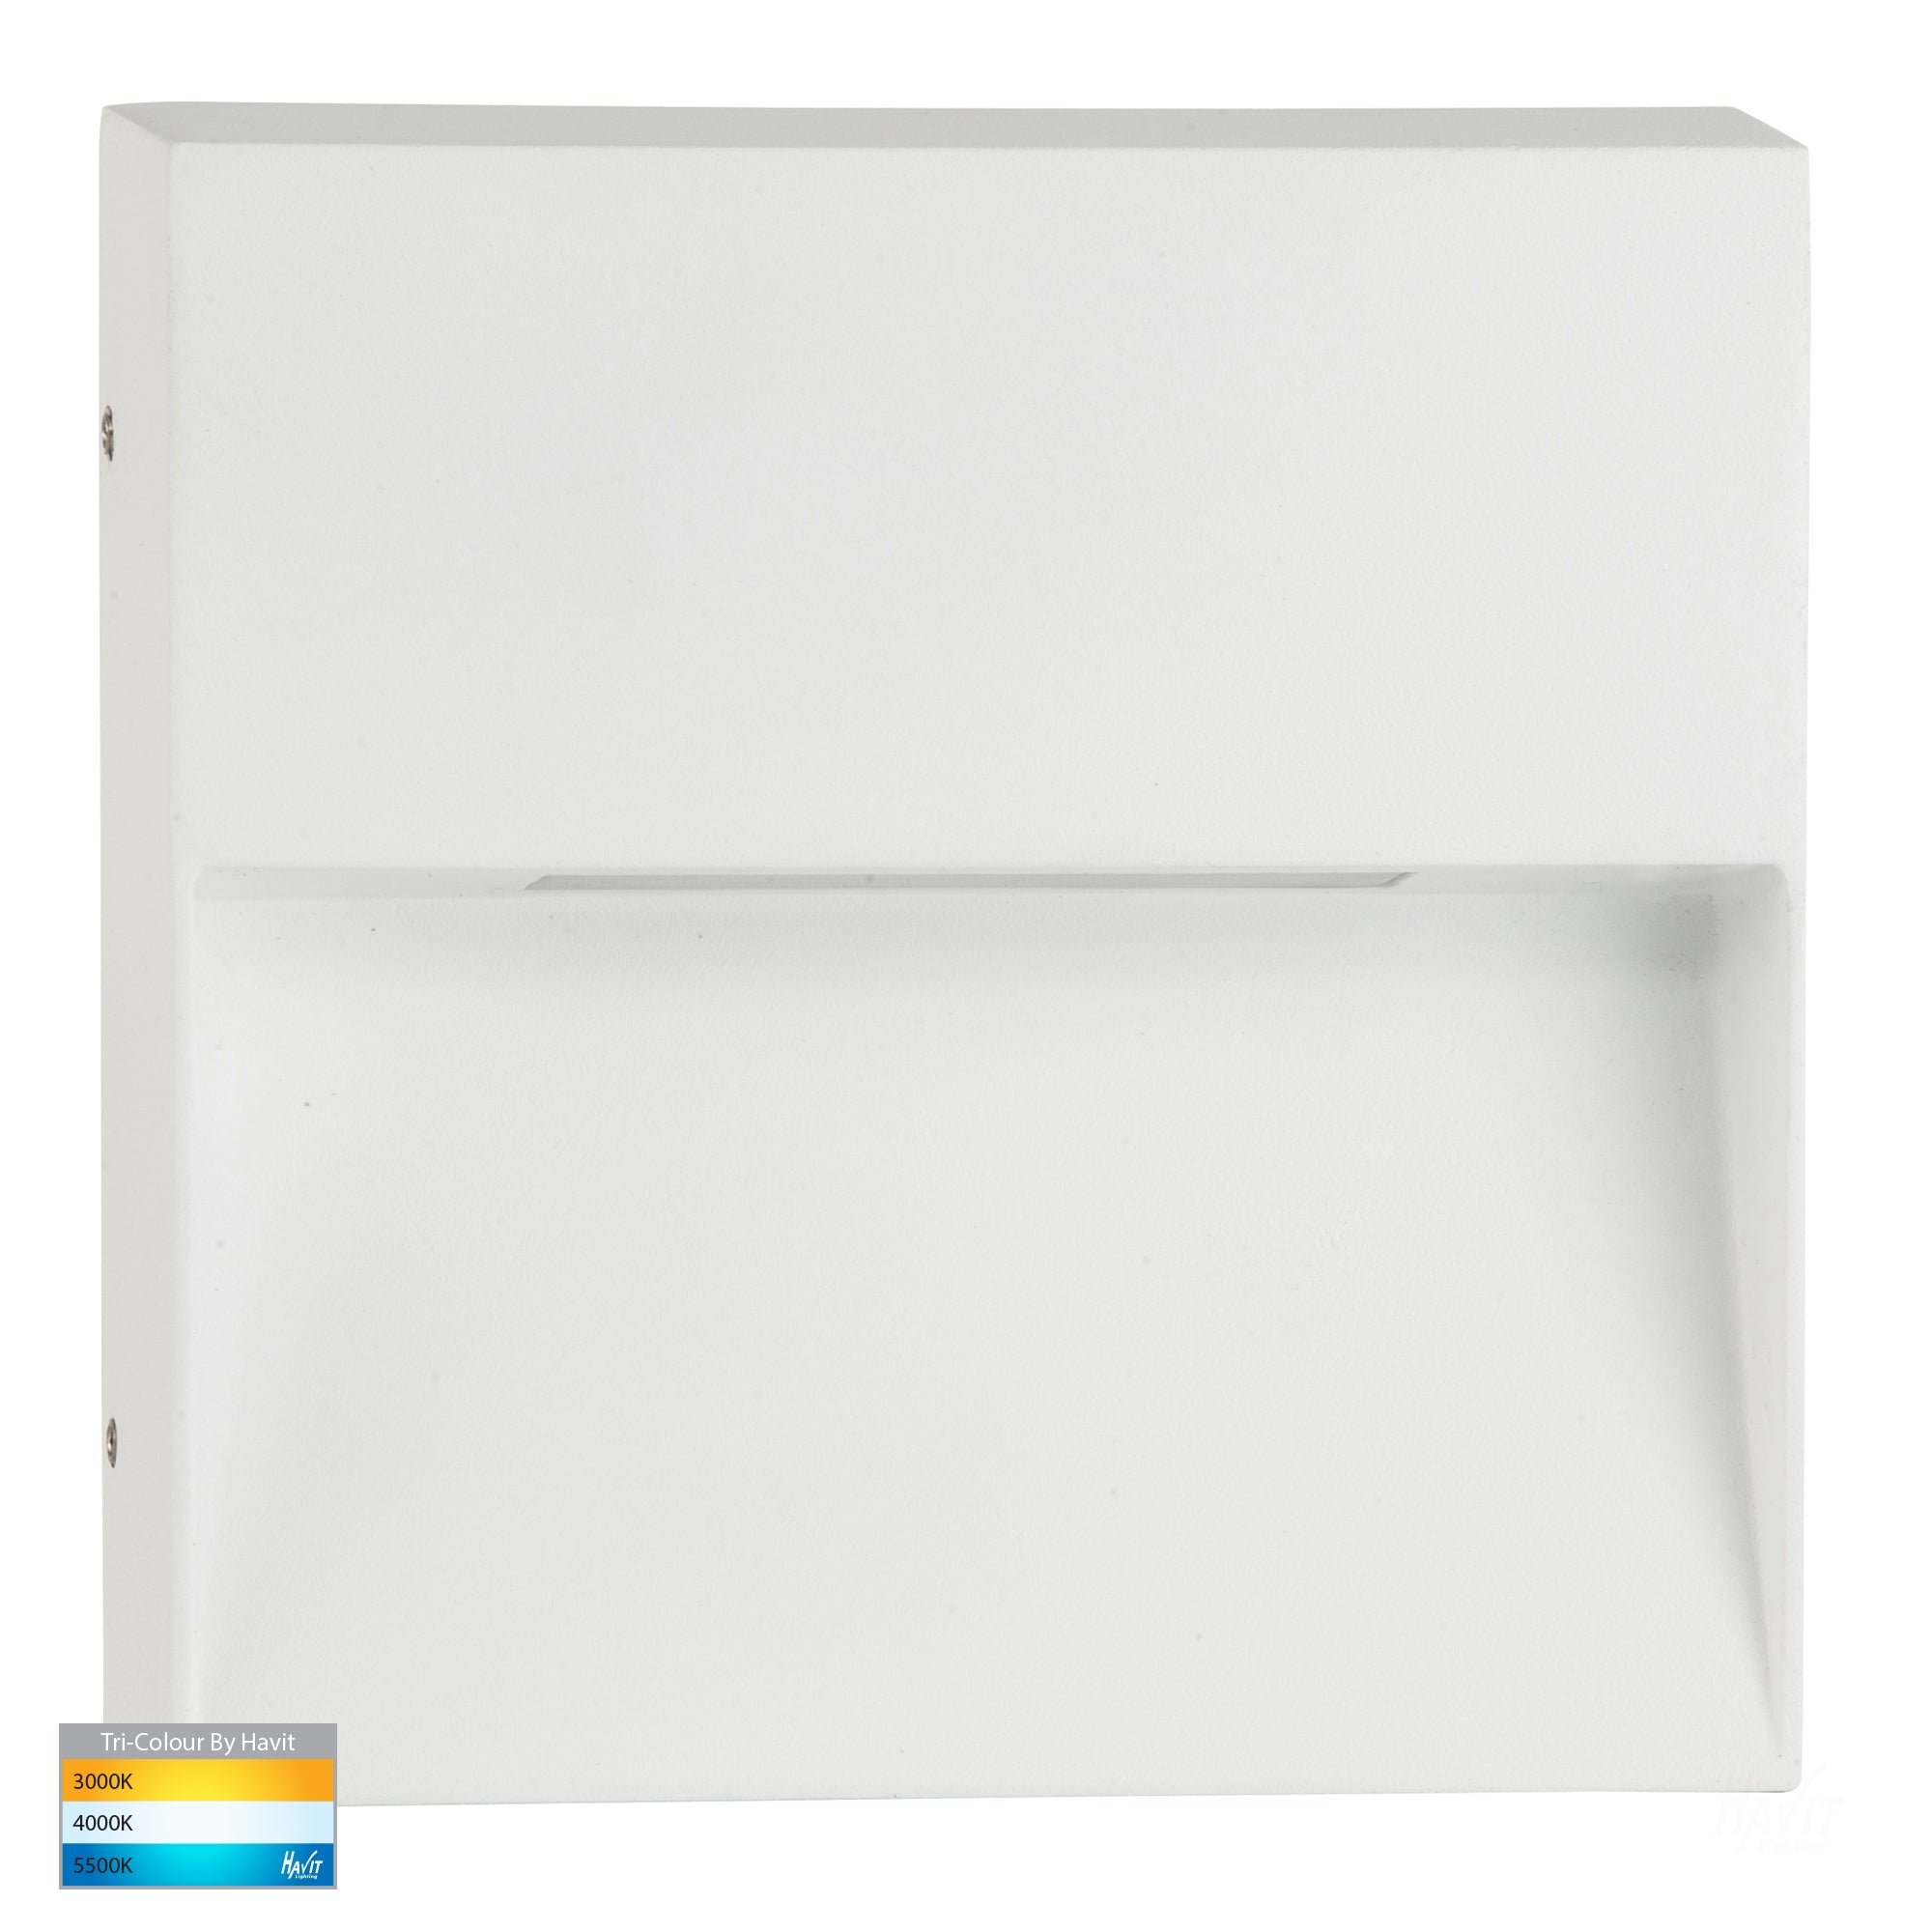 HV3276T-WHT - Virsma White Square LED Step lights